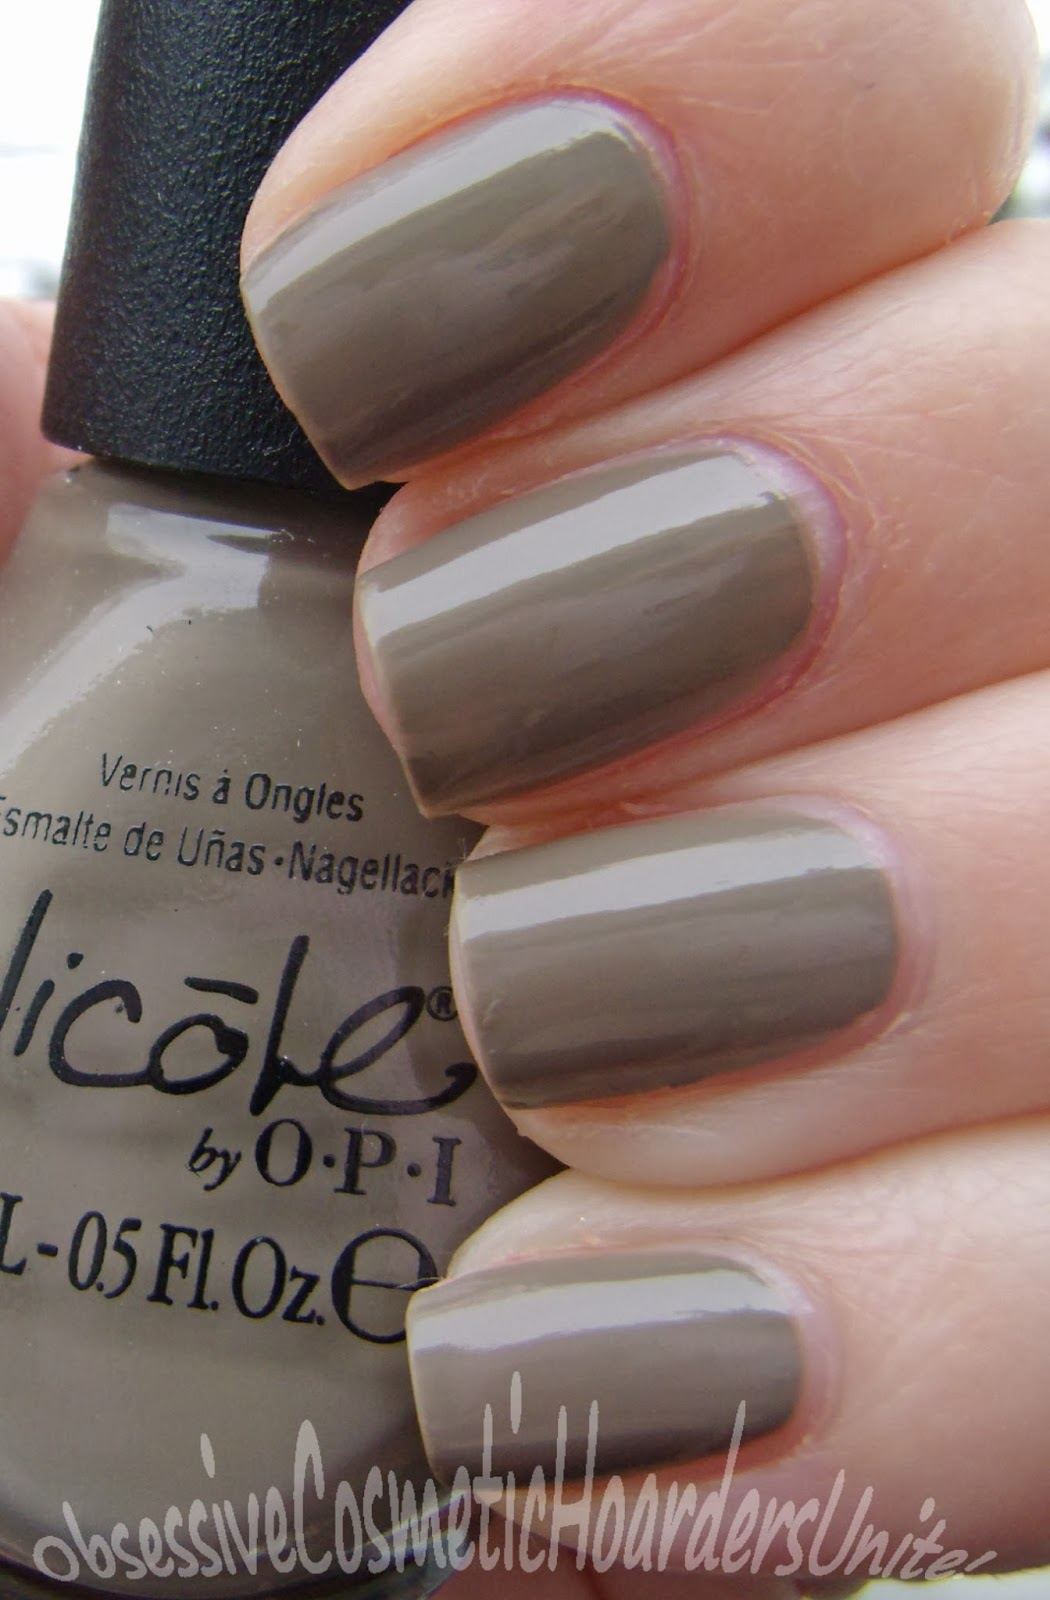 Obsessive Cosmetic Hoarders Unite!: NEW Nicole by OPI Core Colors ...